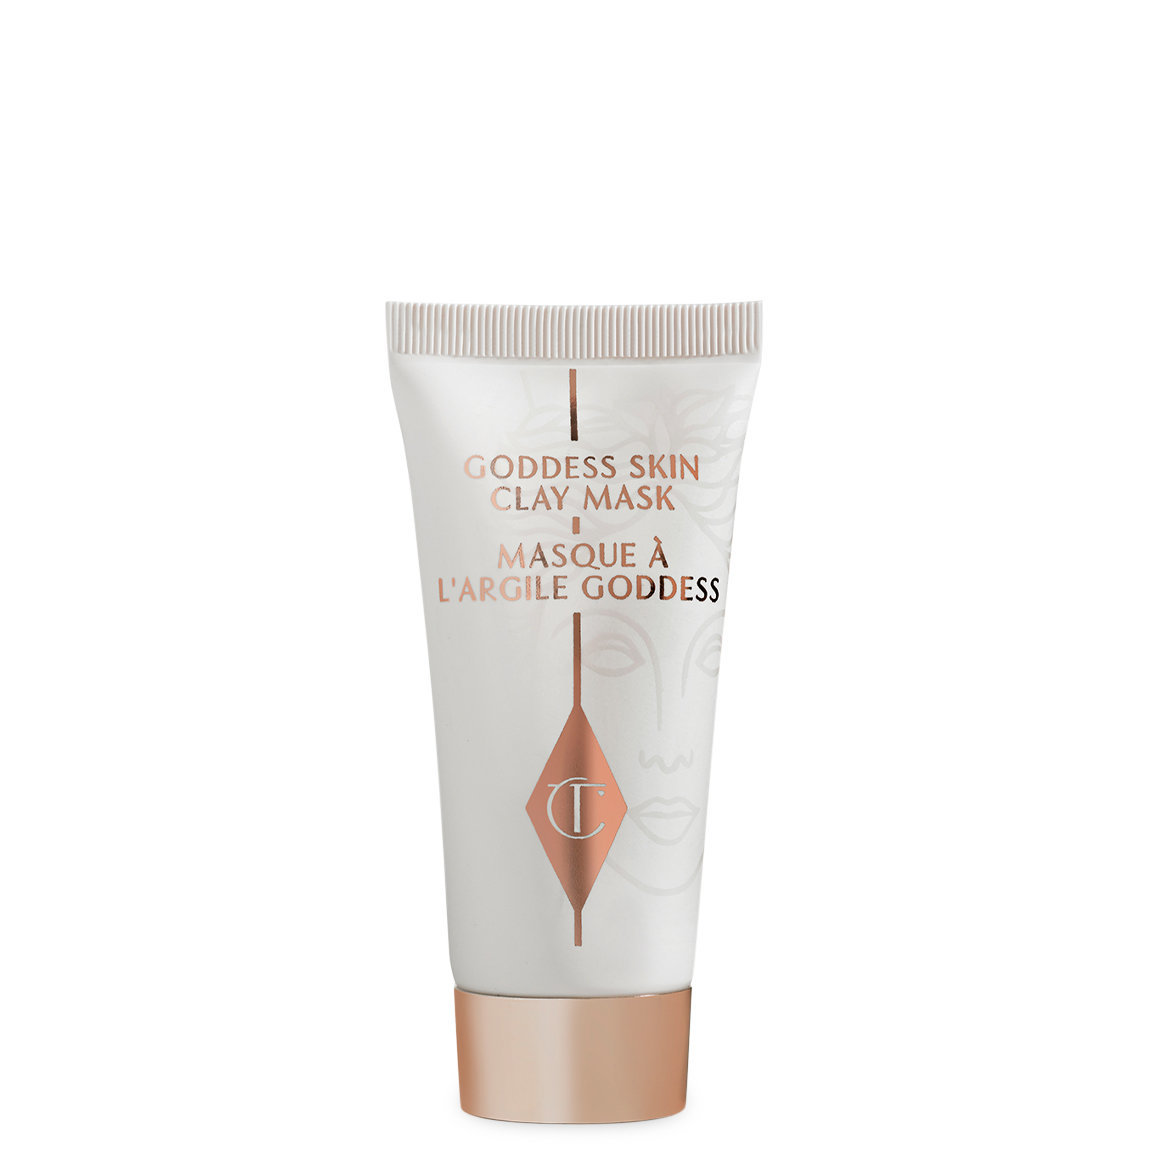 Charlotte Tilbury Goddess Skin Clay Mask Travel Size product swatch.